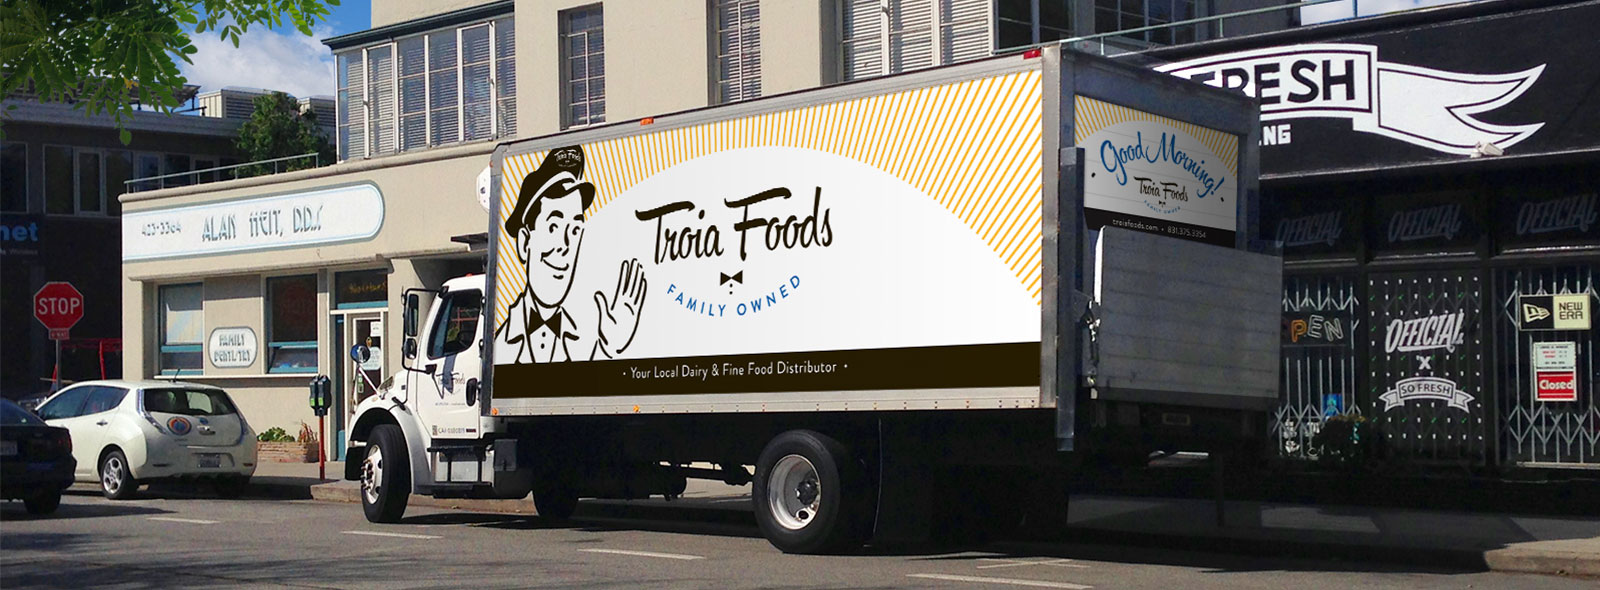 Troia Foods Delivery Truck